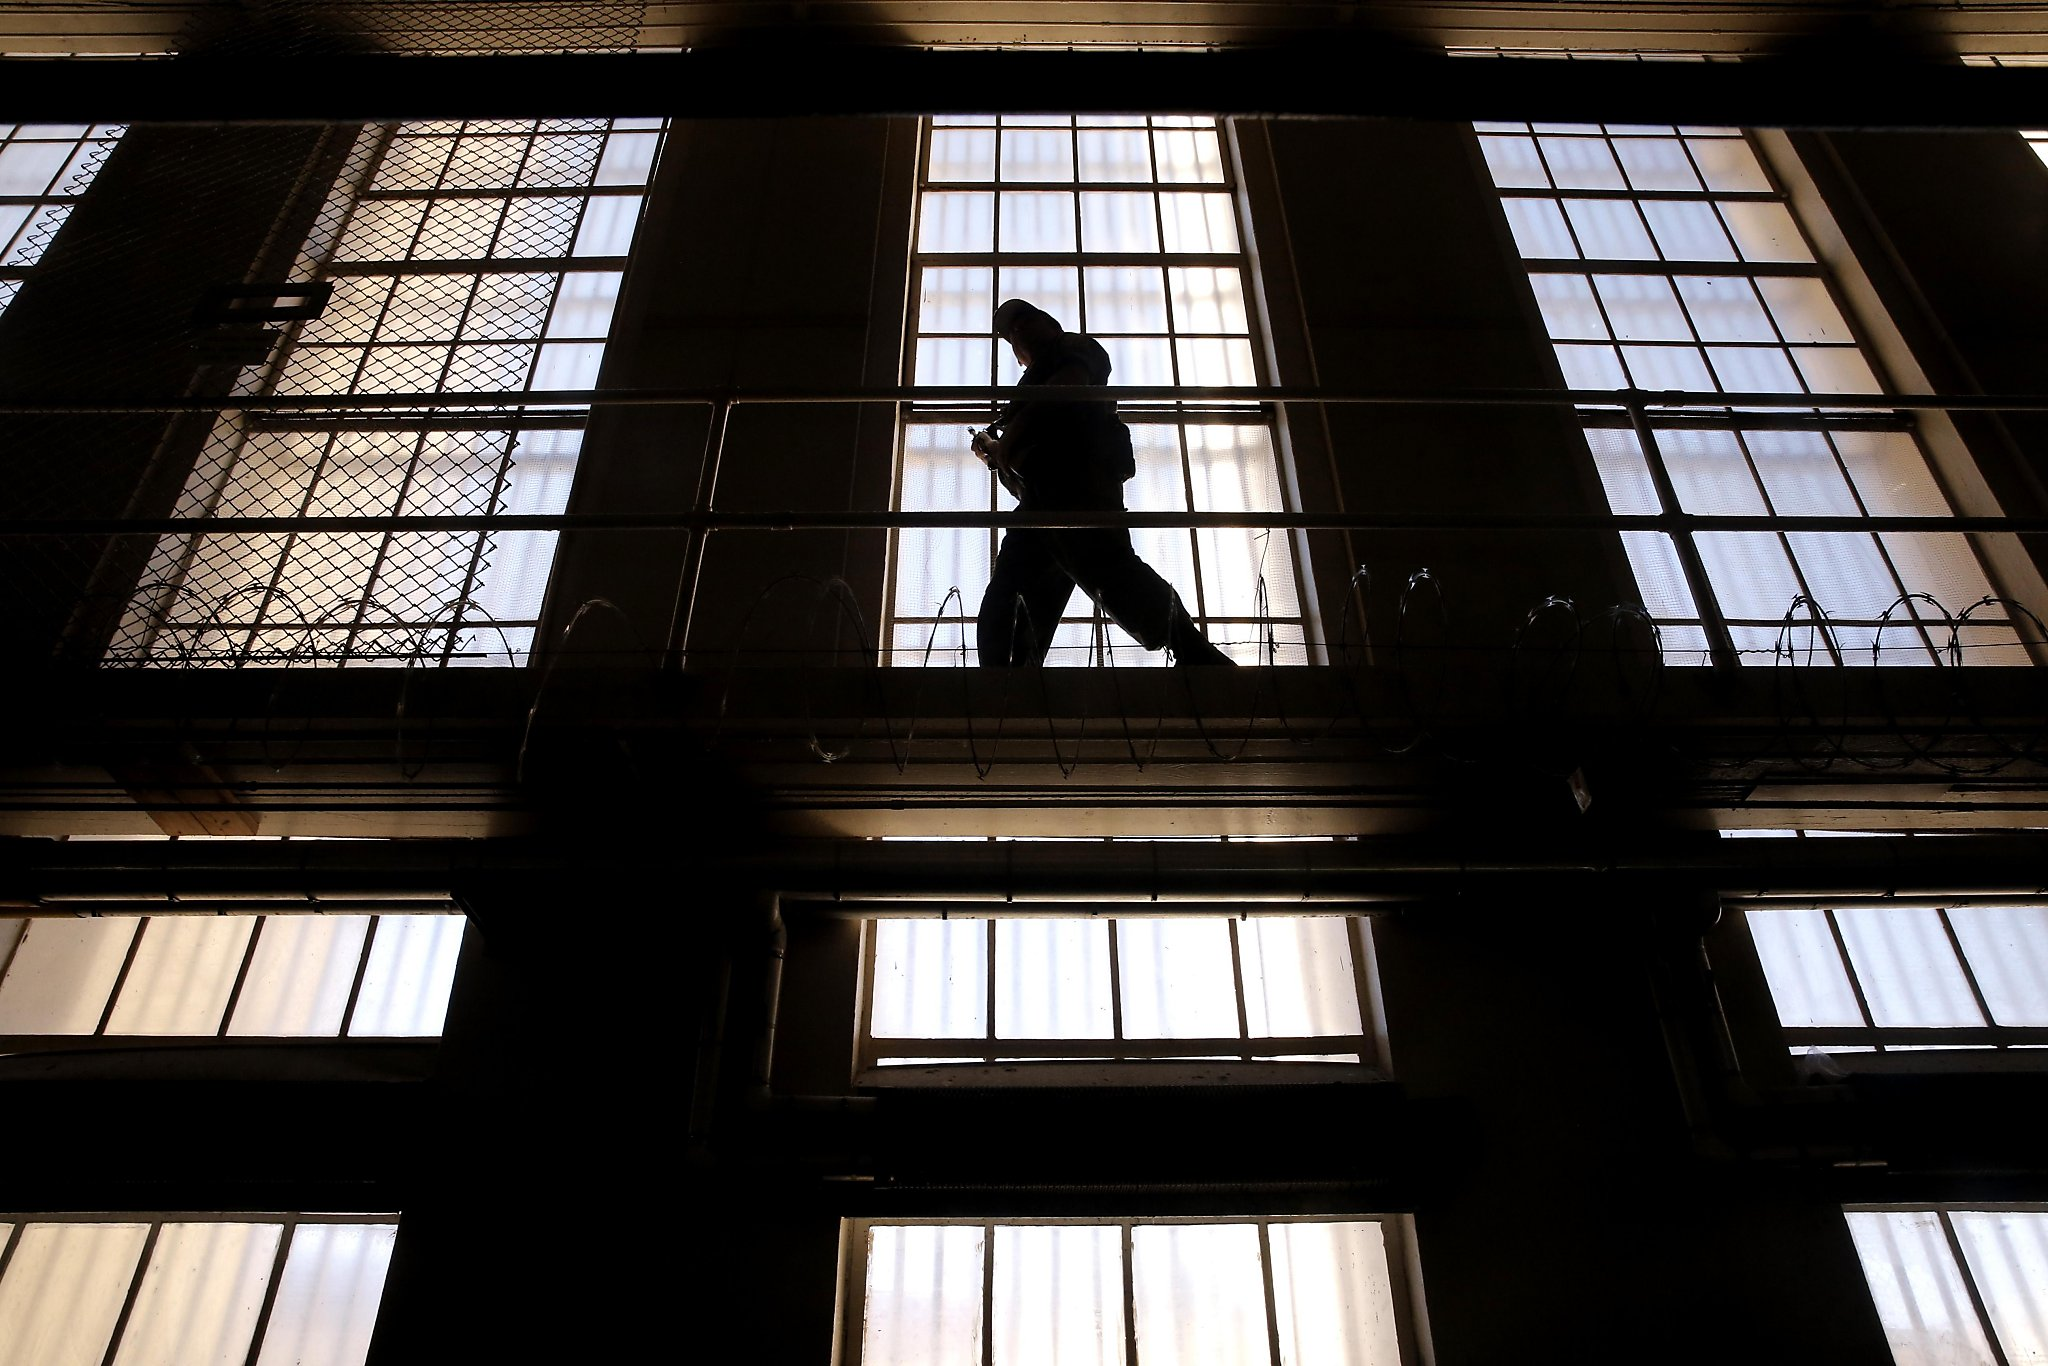 Suicide attempts have more than doubled in Texas prisons